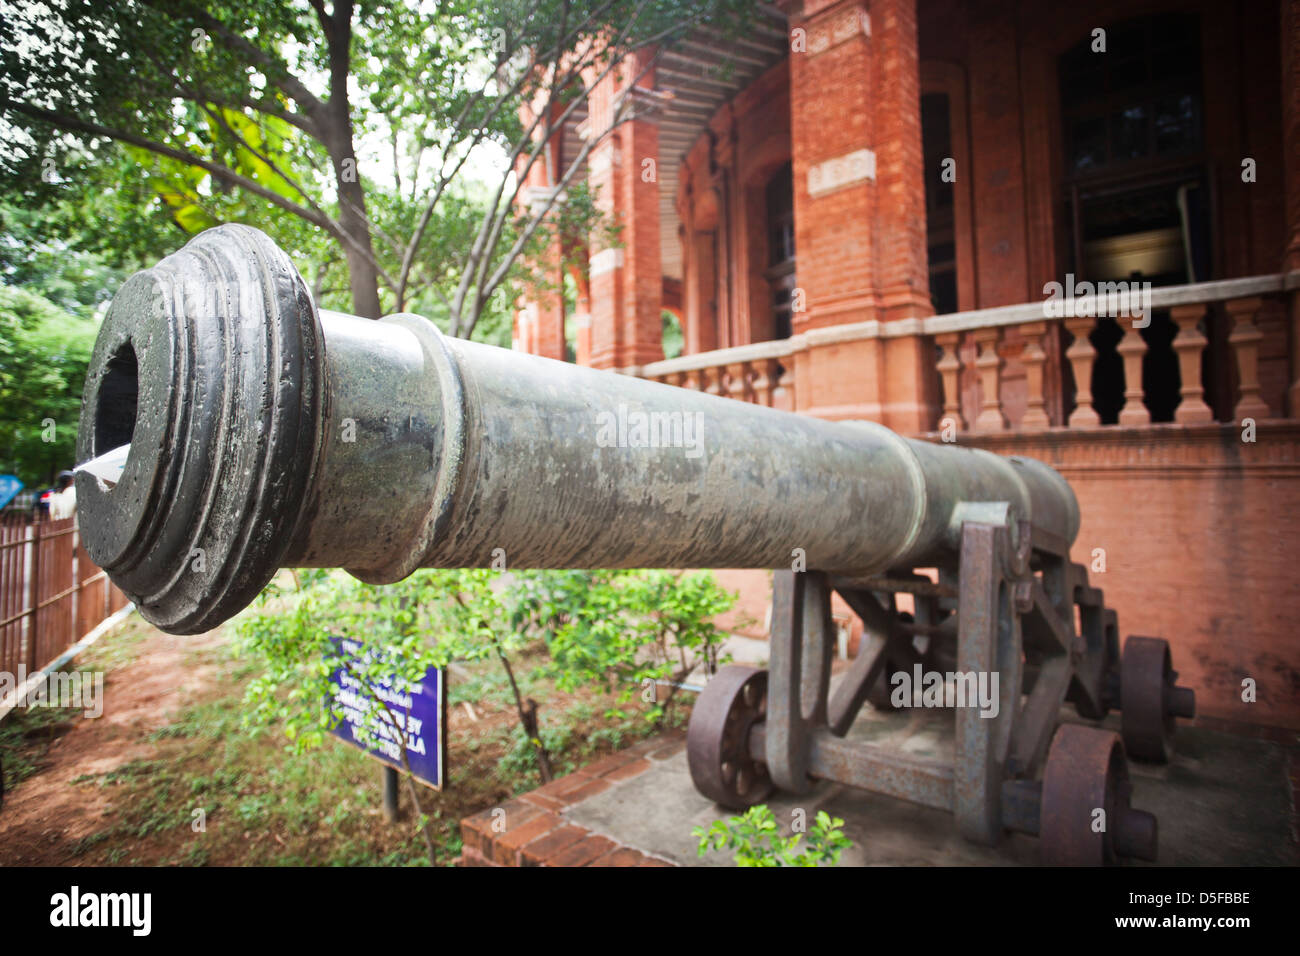 Cannon at Fort Museum, Fort St. George, Chennai, Tamil Nadu, India - Stock Image